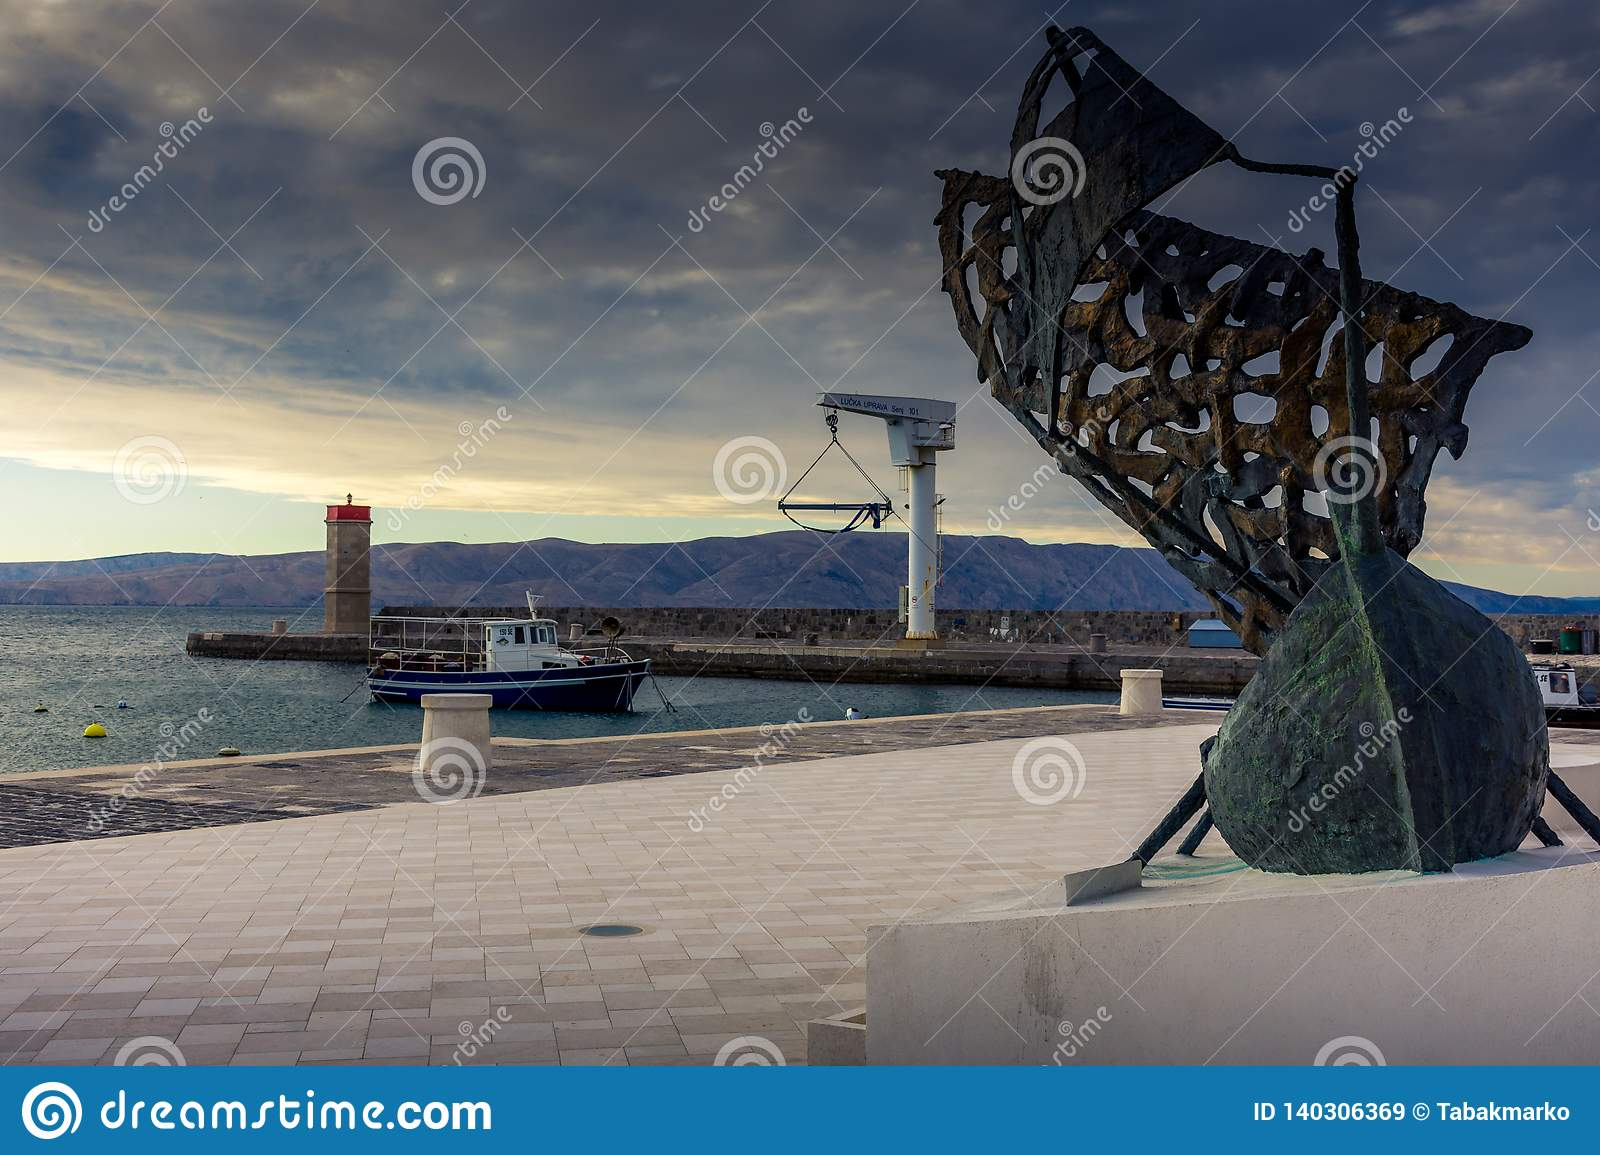 A boat in a port with a statue of a sailing boat in foreground